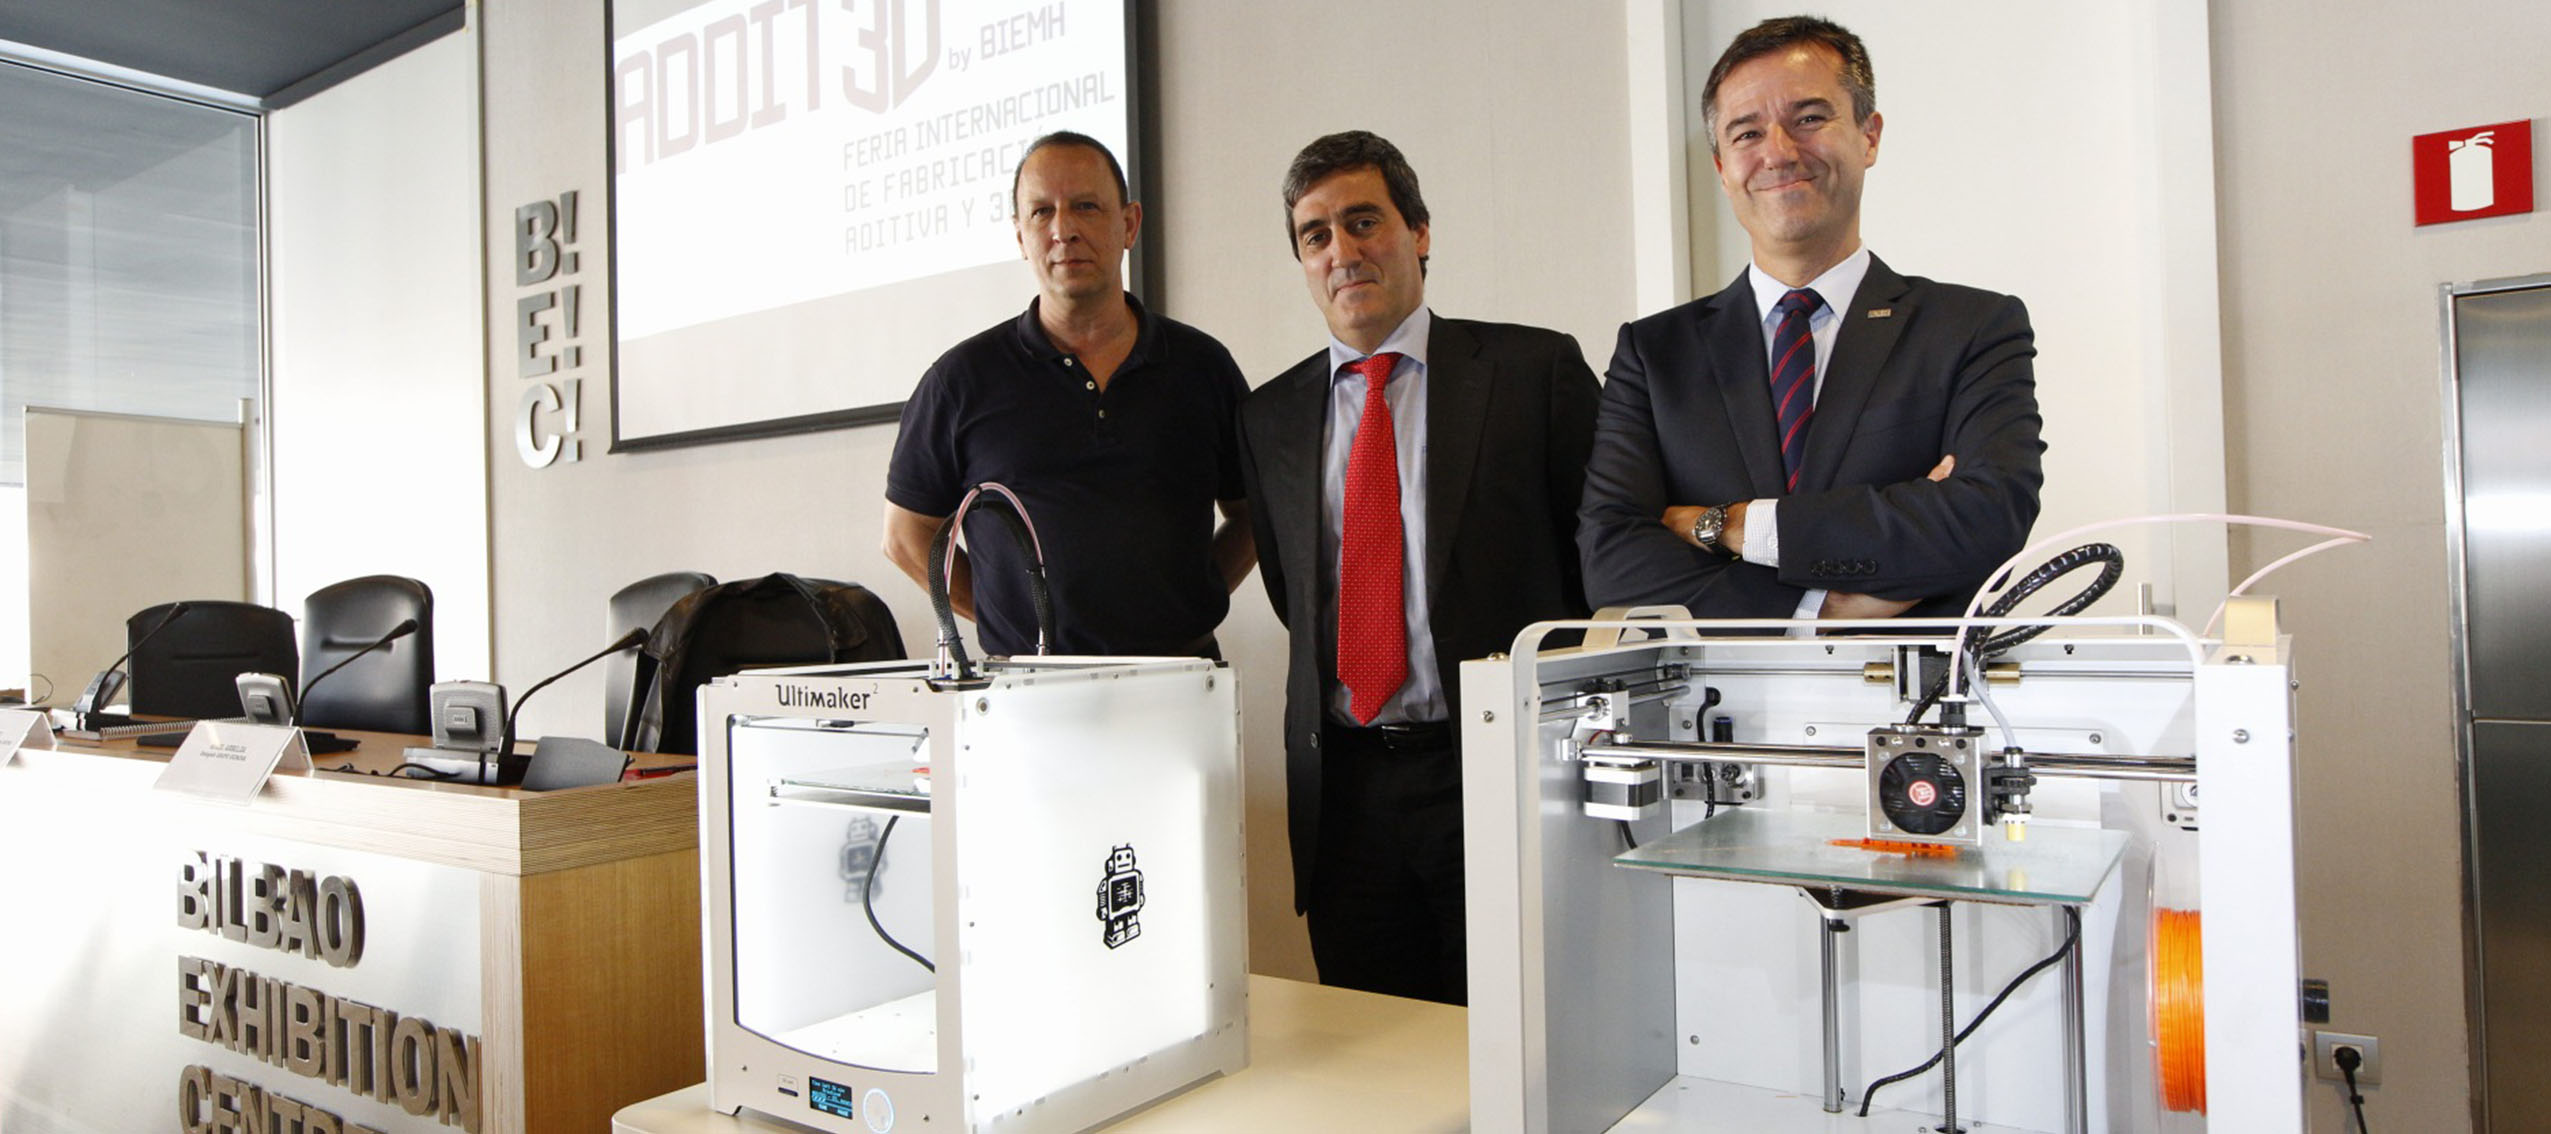 Addit3d, the first trade fair focusing on additive and 3D manufacturing